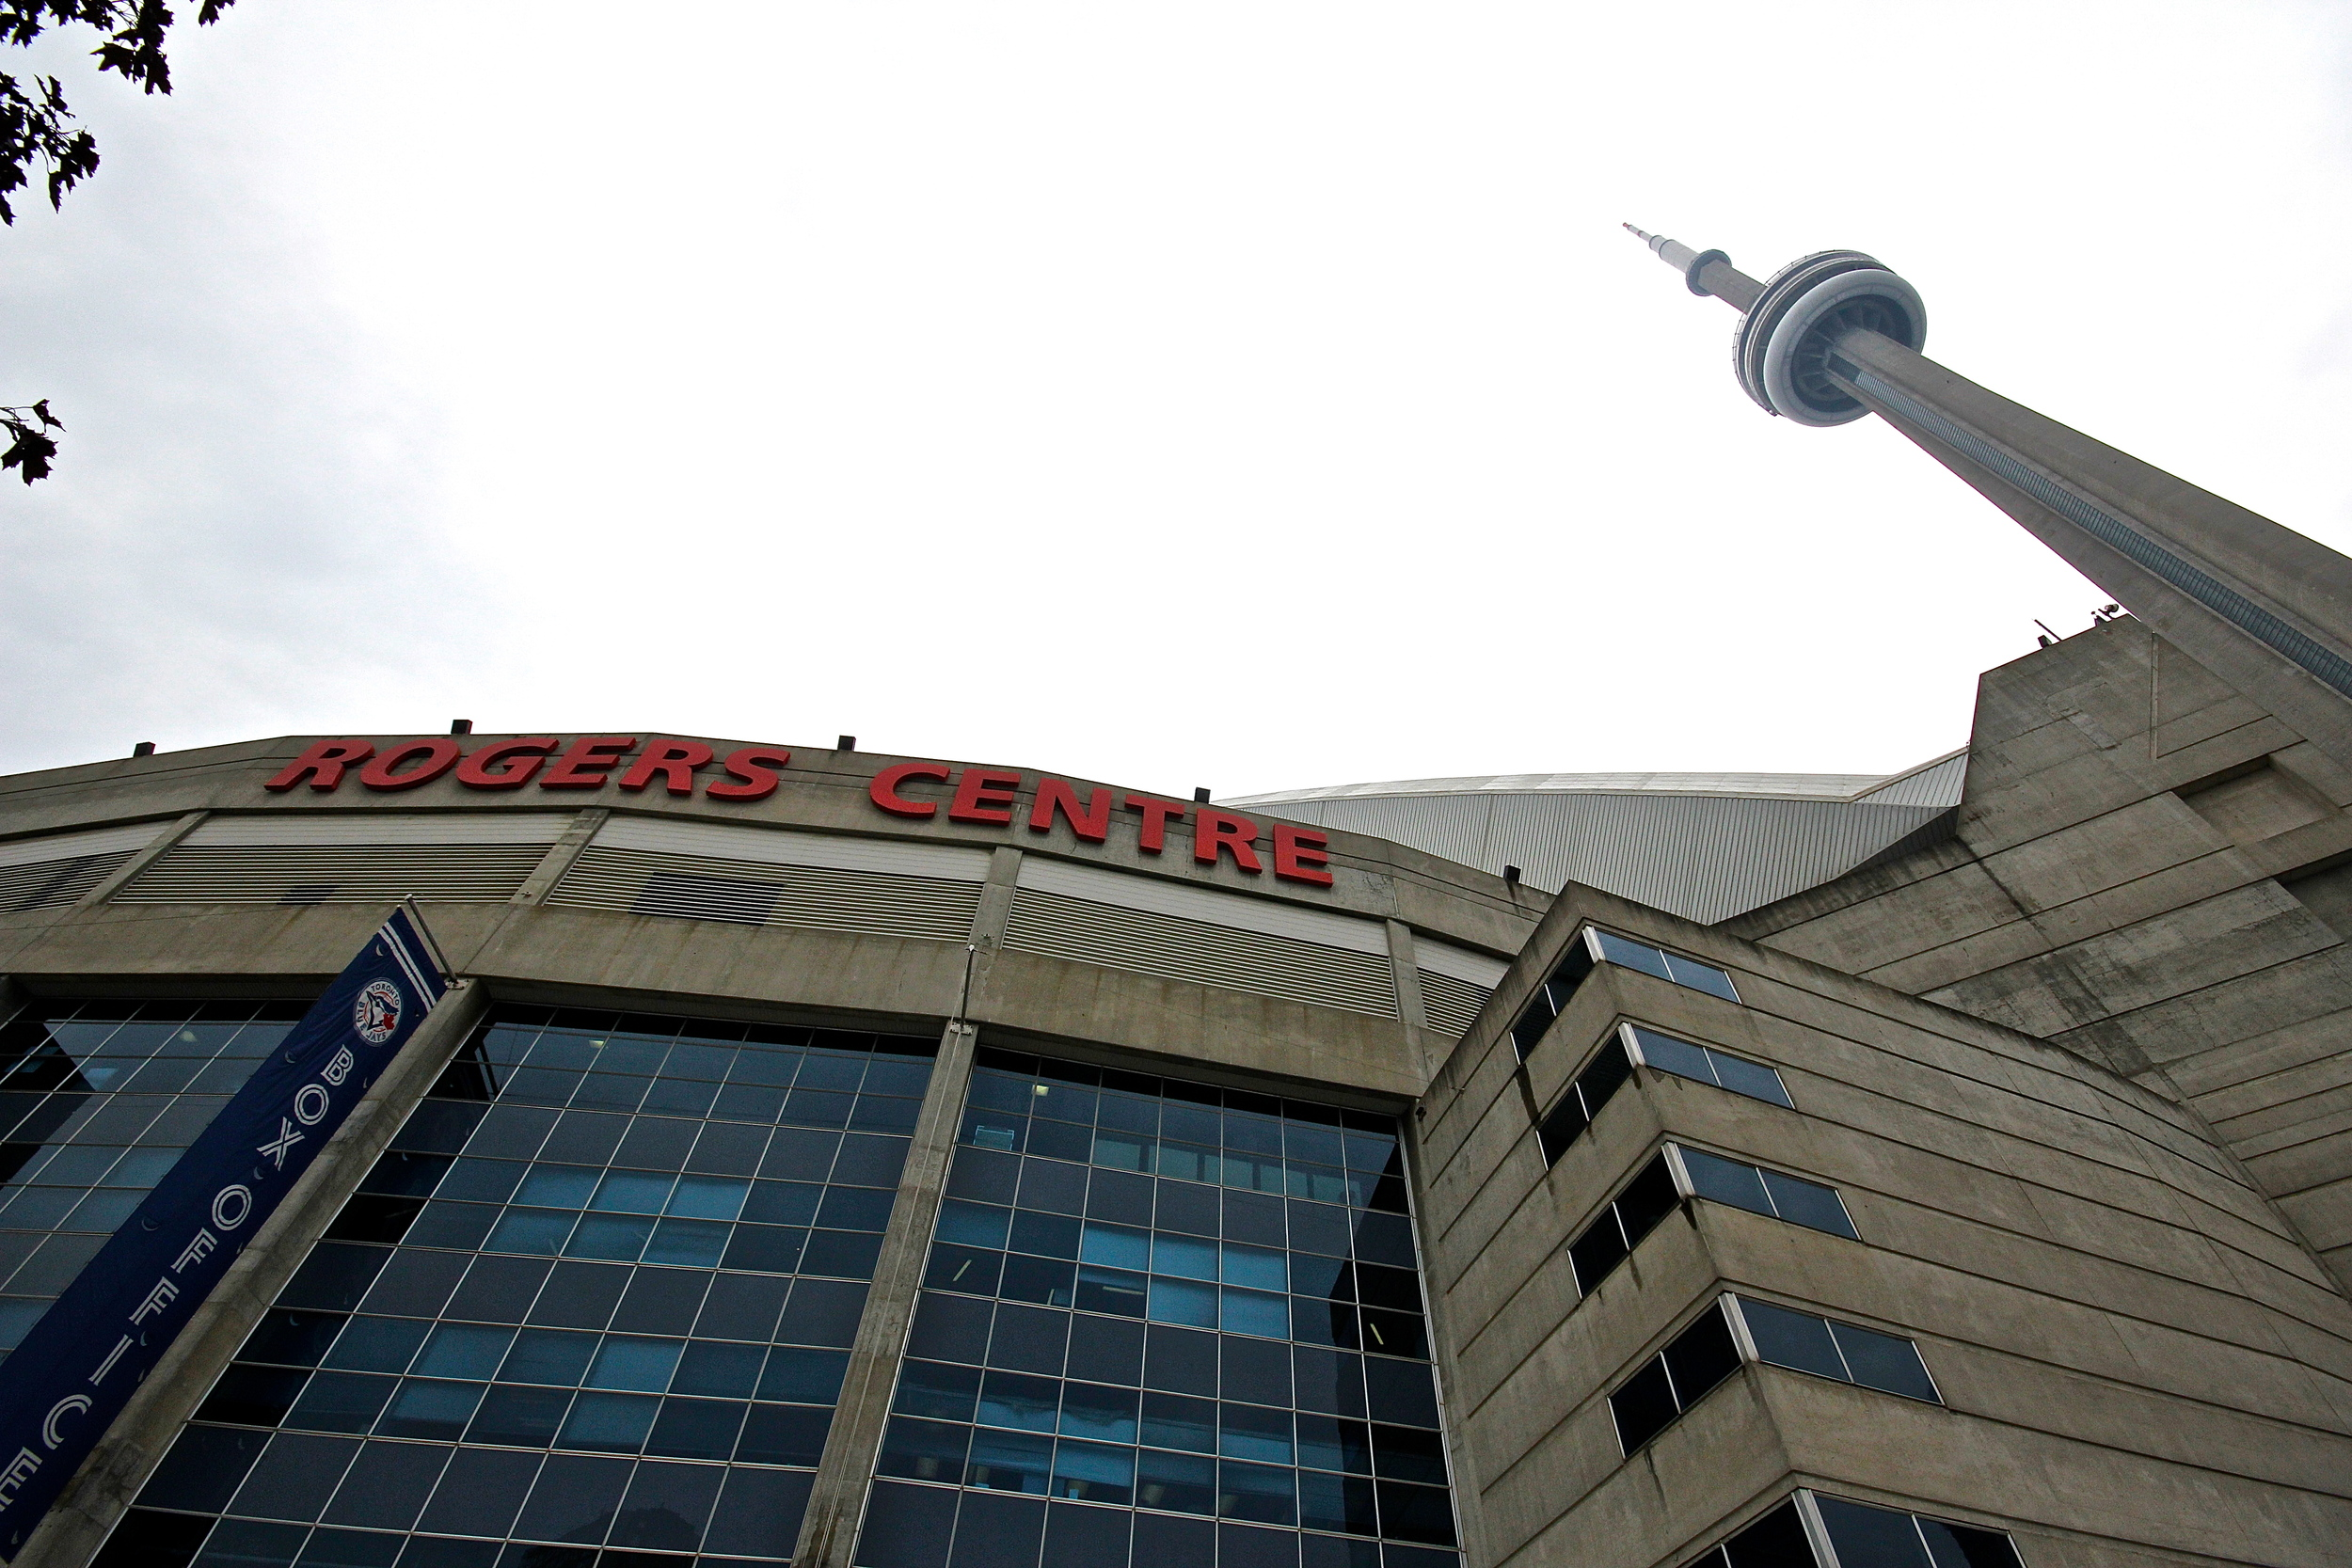 CN Tower in the shadow of Rogers Centre